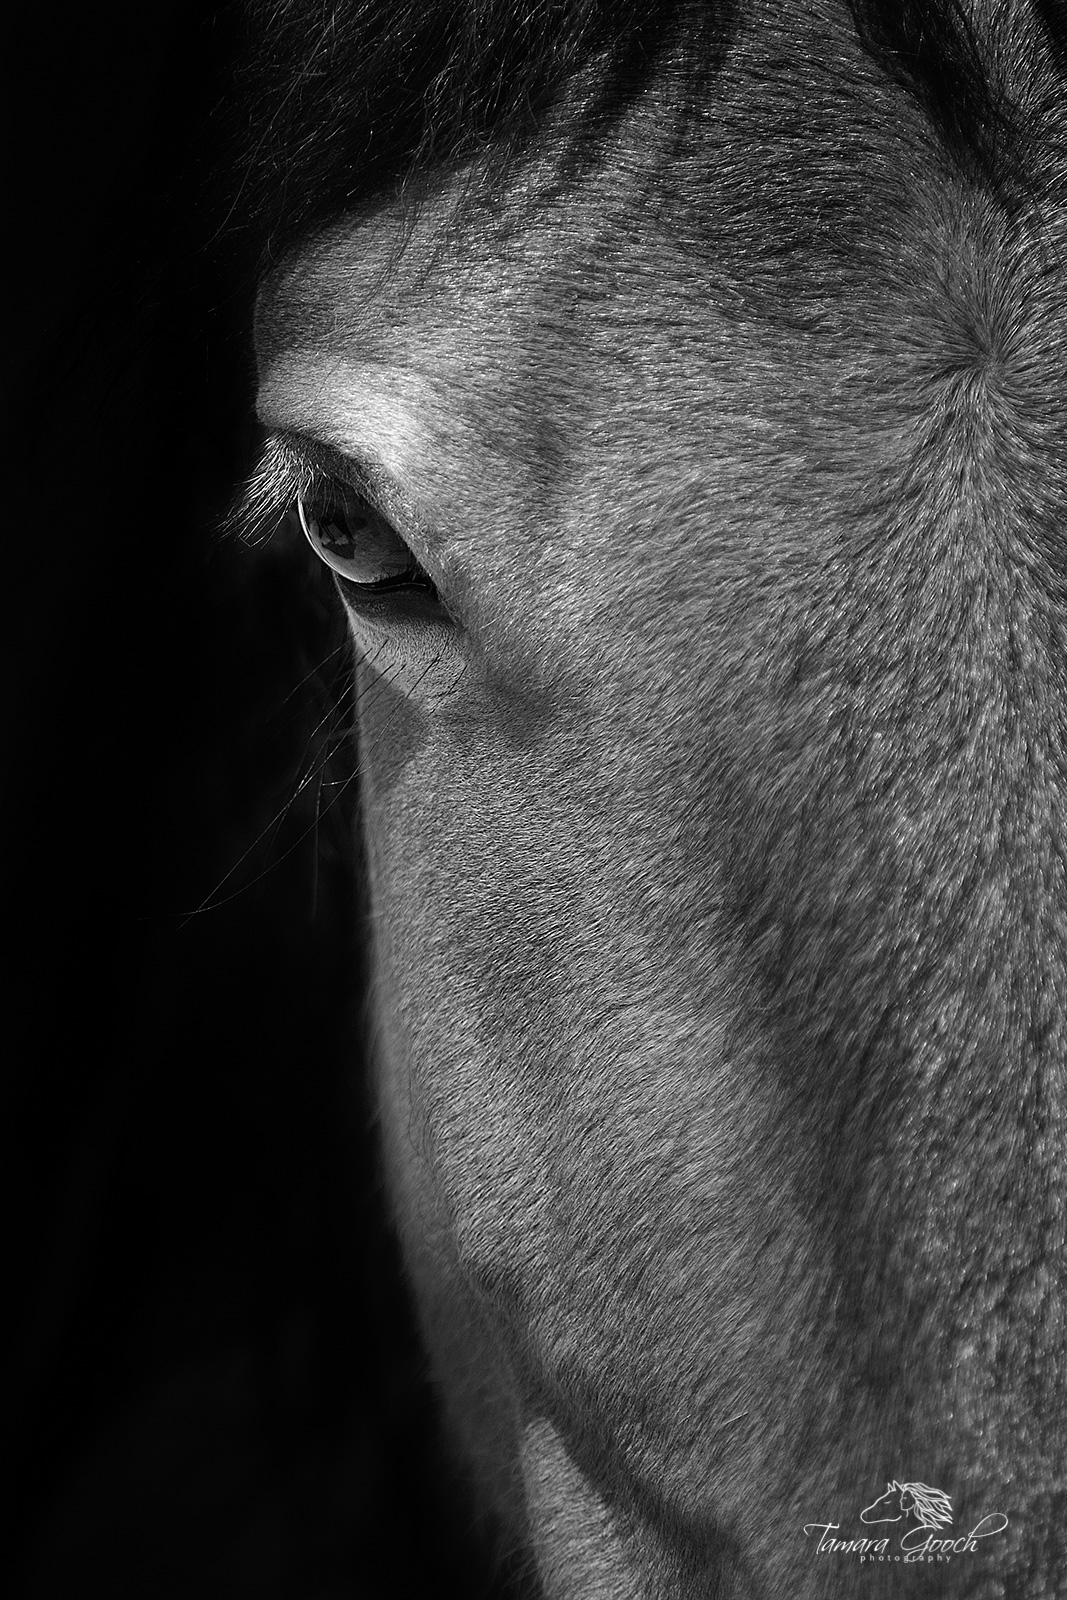 A fine art black and white horse portrait. A close up eye shot with part of the face.